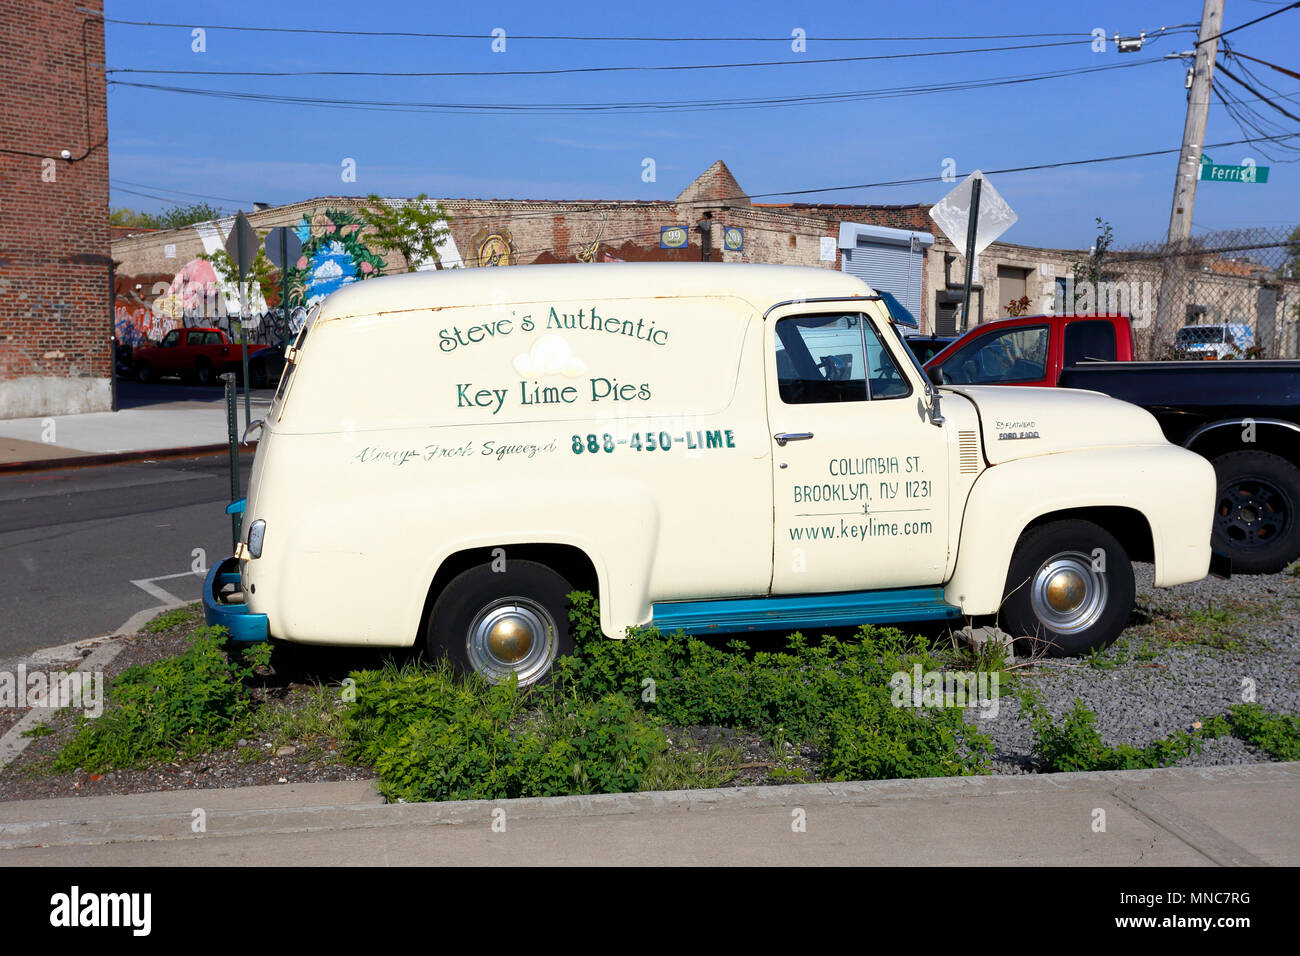 Steve's Key Lime Pie 1953 Ford F-100 delivery truck - Stock Image